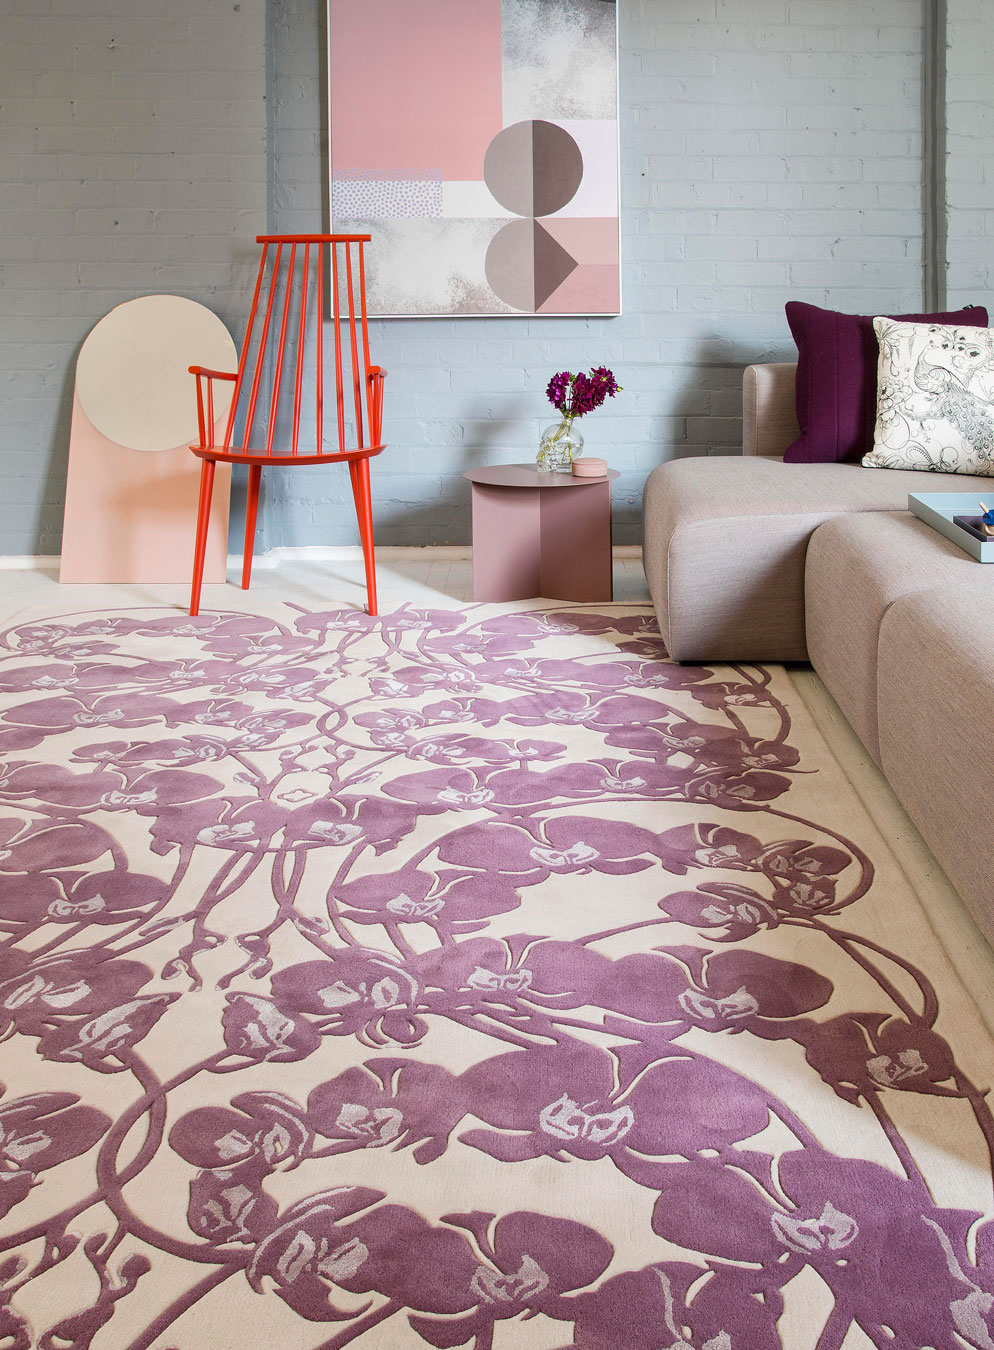 Living room image of art nouveau Mucha Bloom rug by Kingdom Home in purple colour